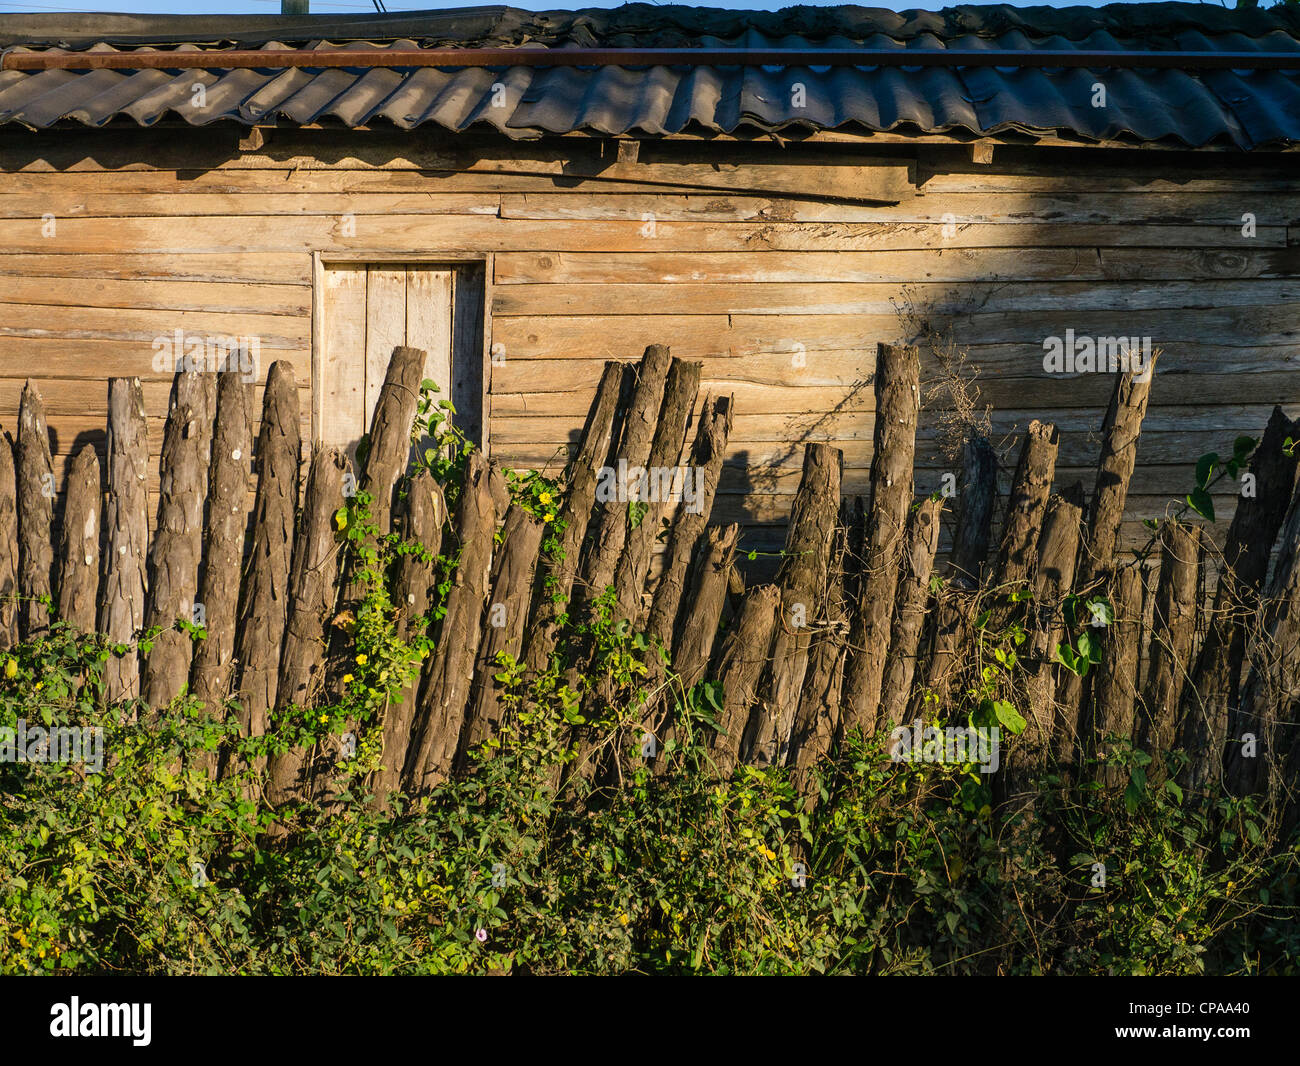 A rustic, primitive wooden fence made of tree branches in Viñales, Cuba. - Stock Image